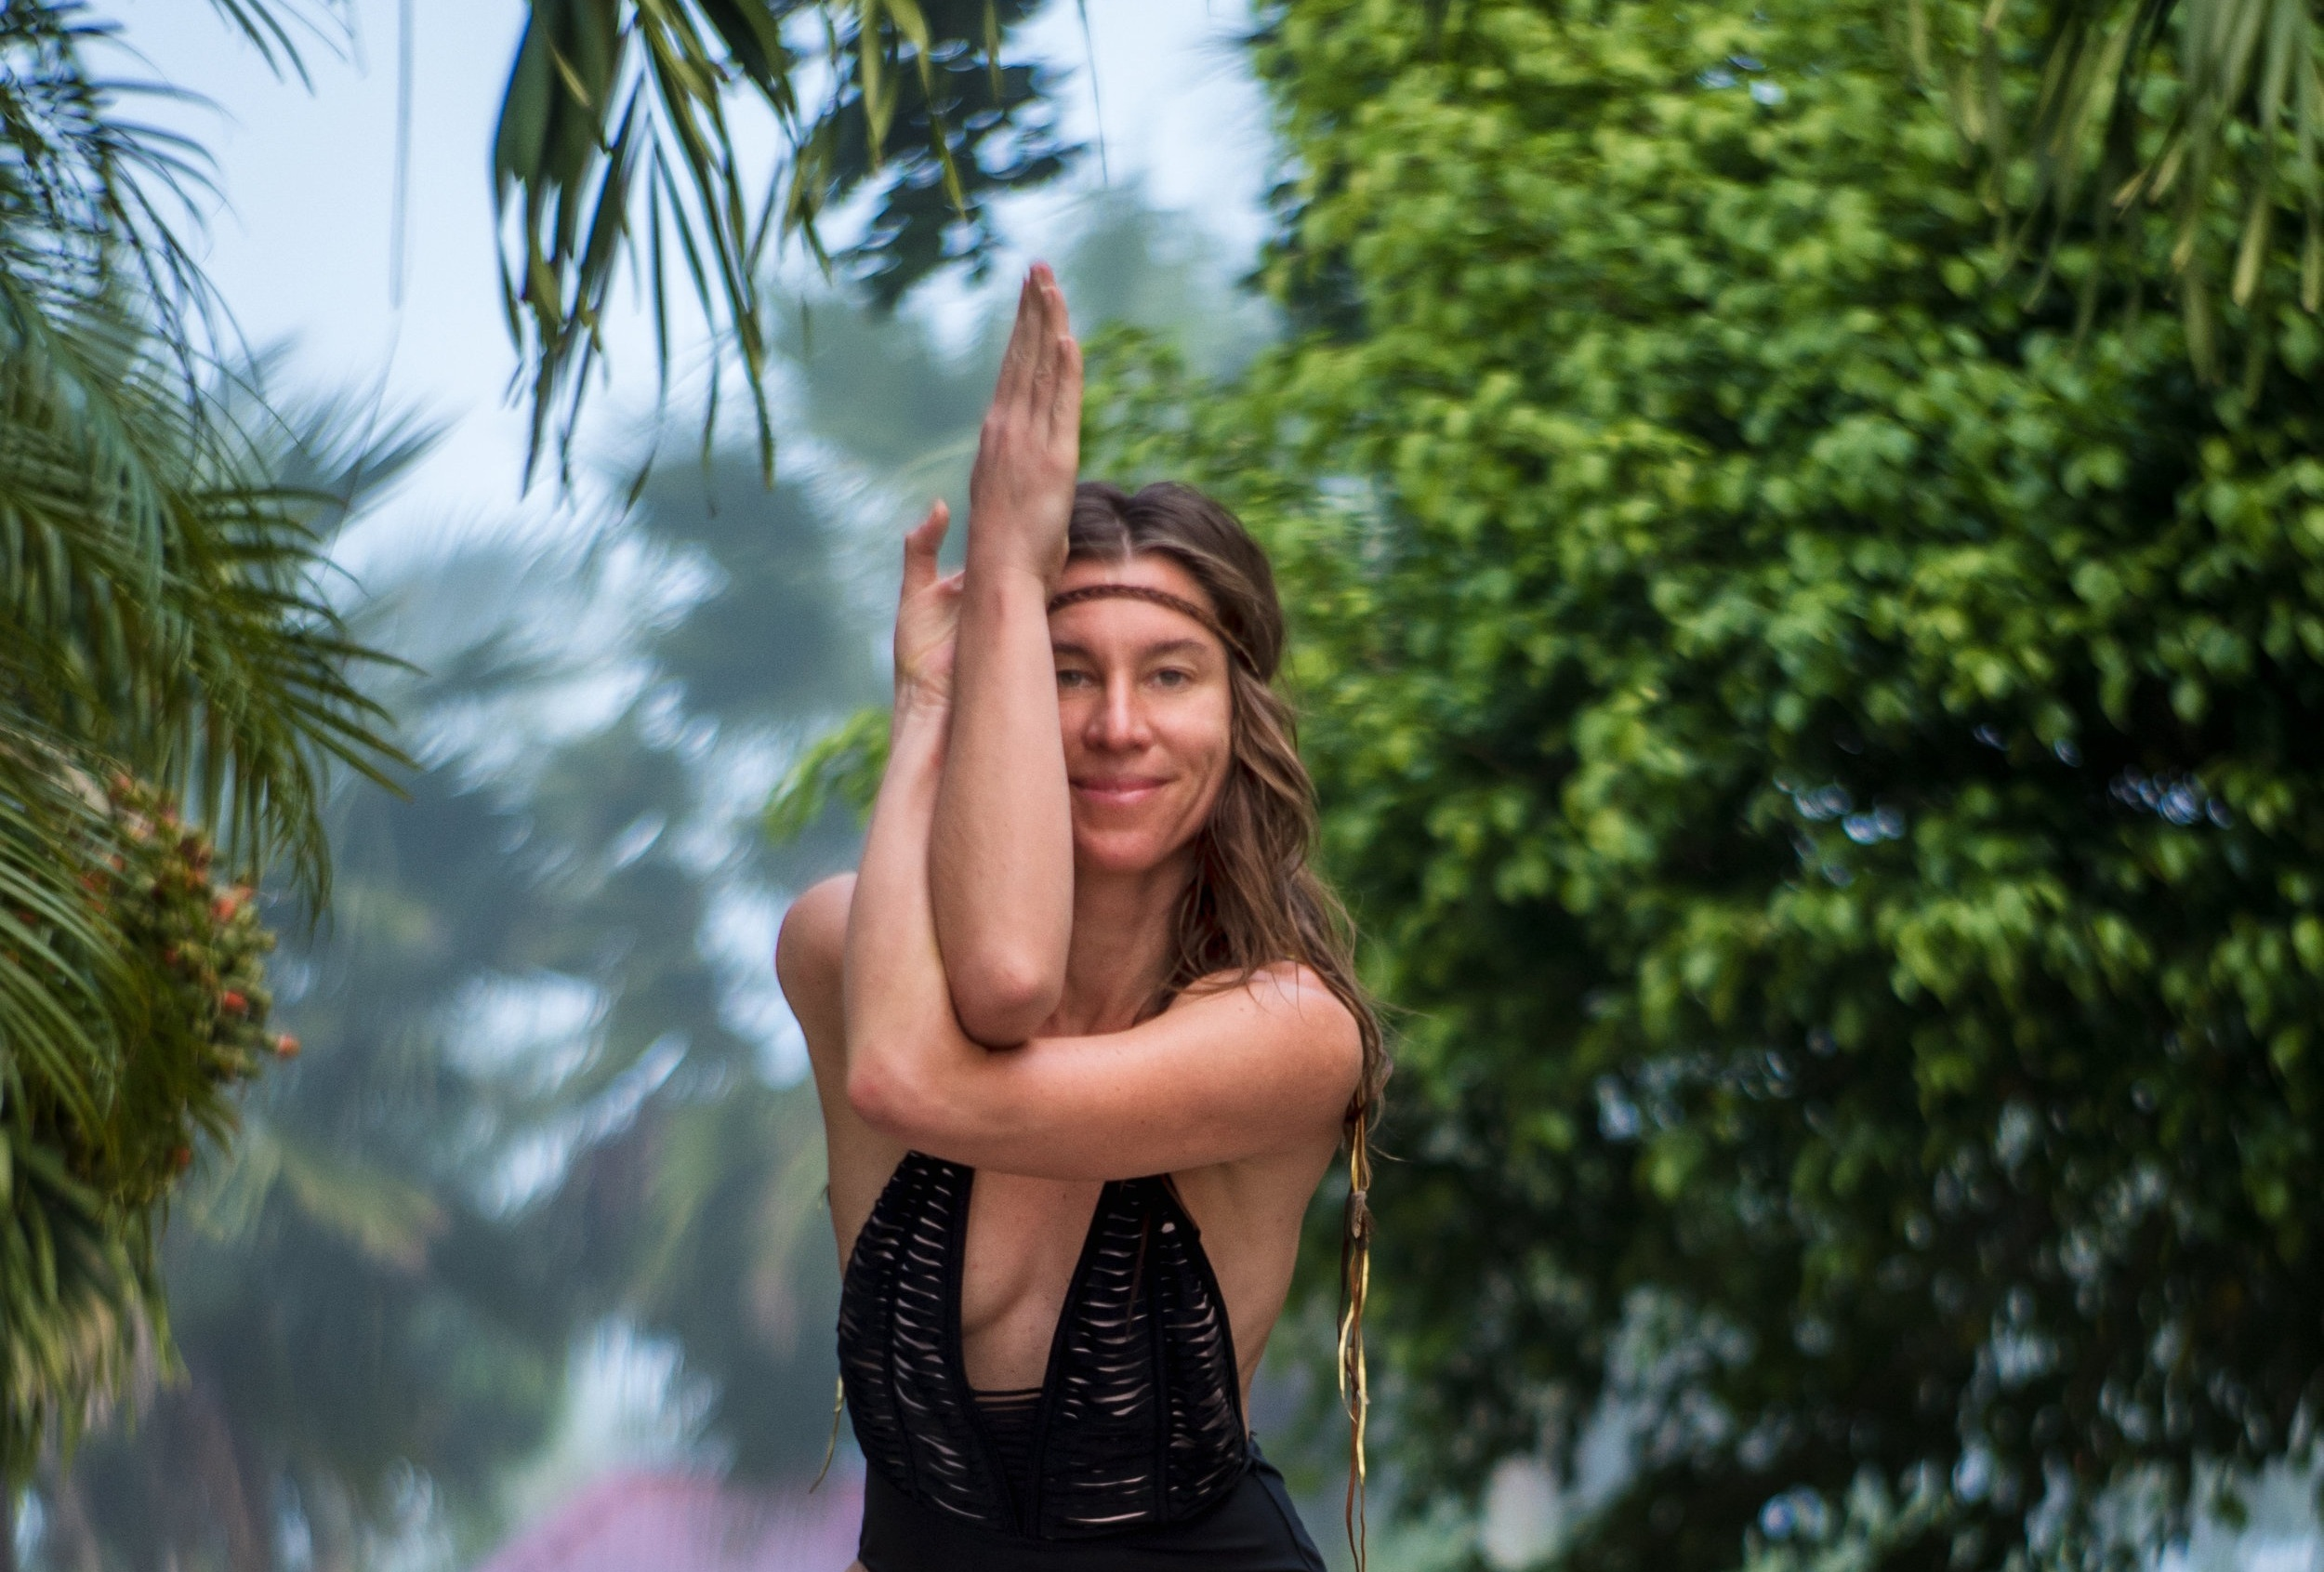 Yoga teacher Eva Kaczor in a body suit with her arms intertwined in a yoga pose with trees in the background